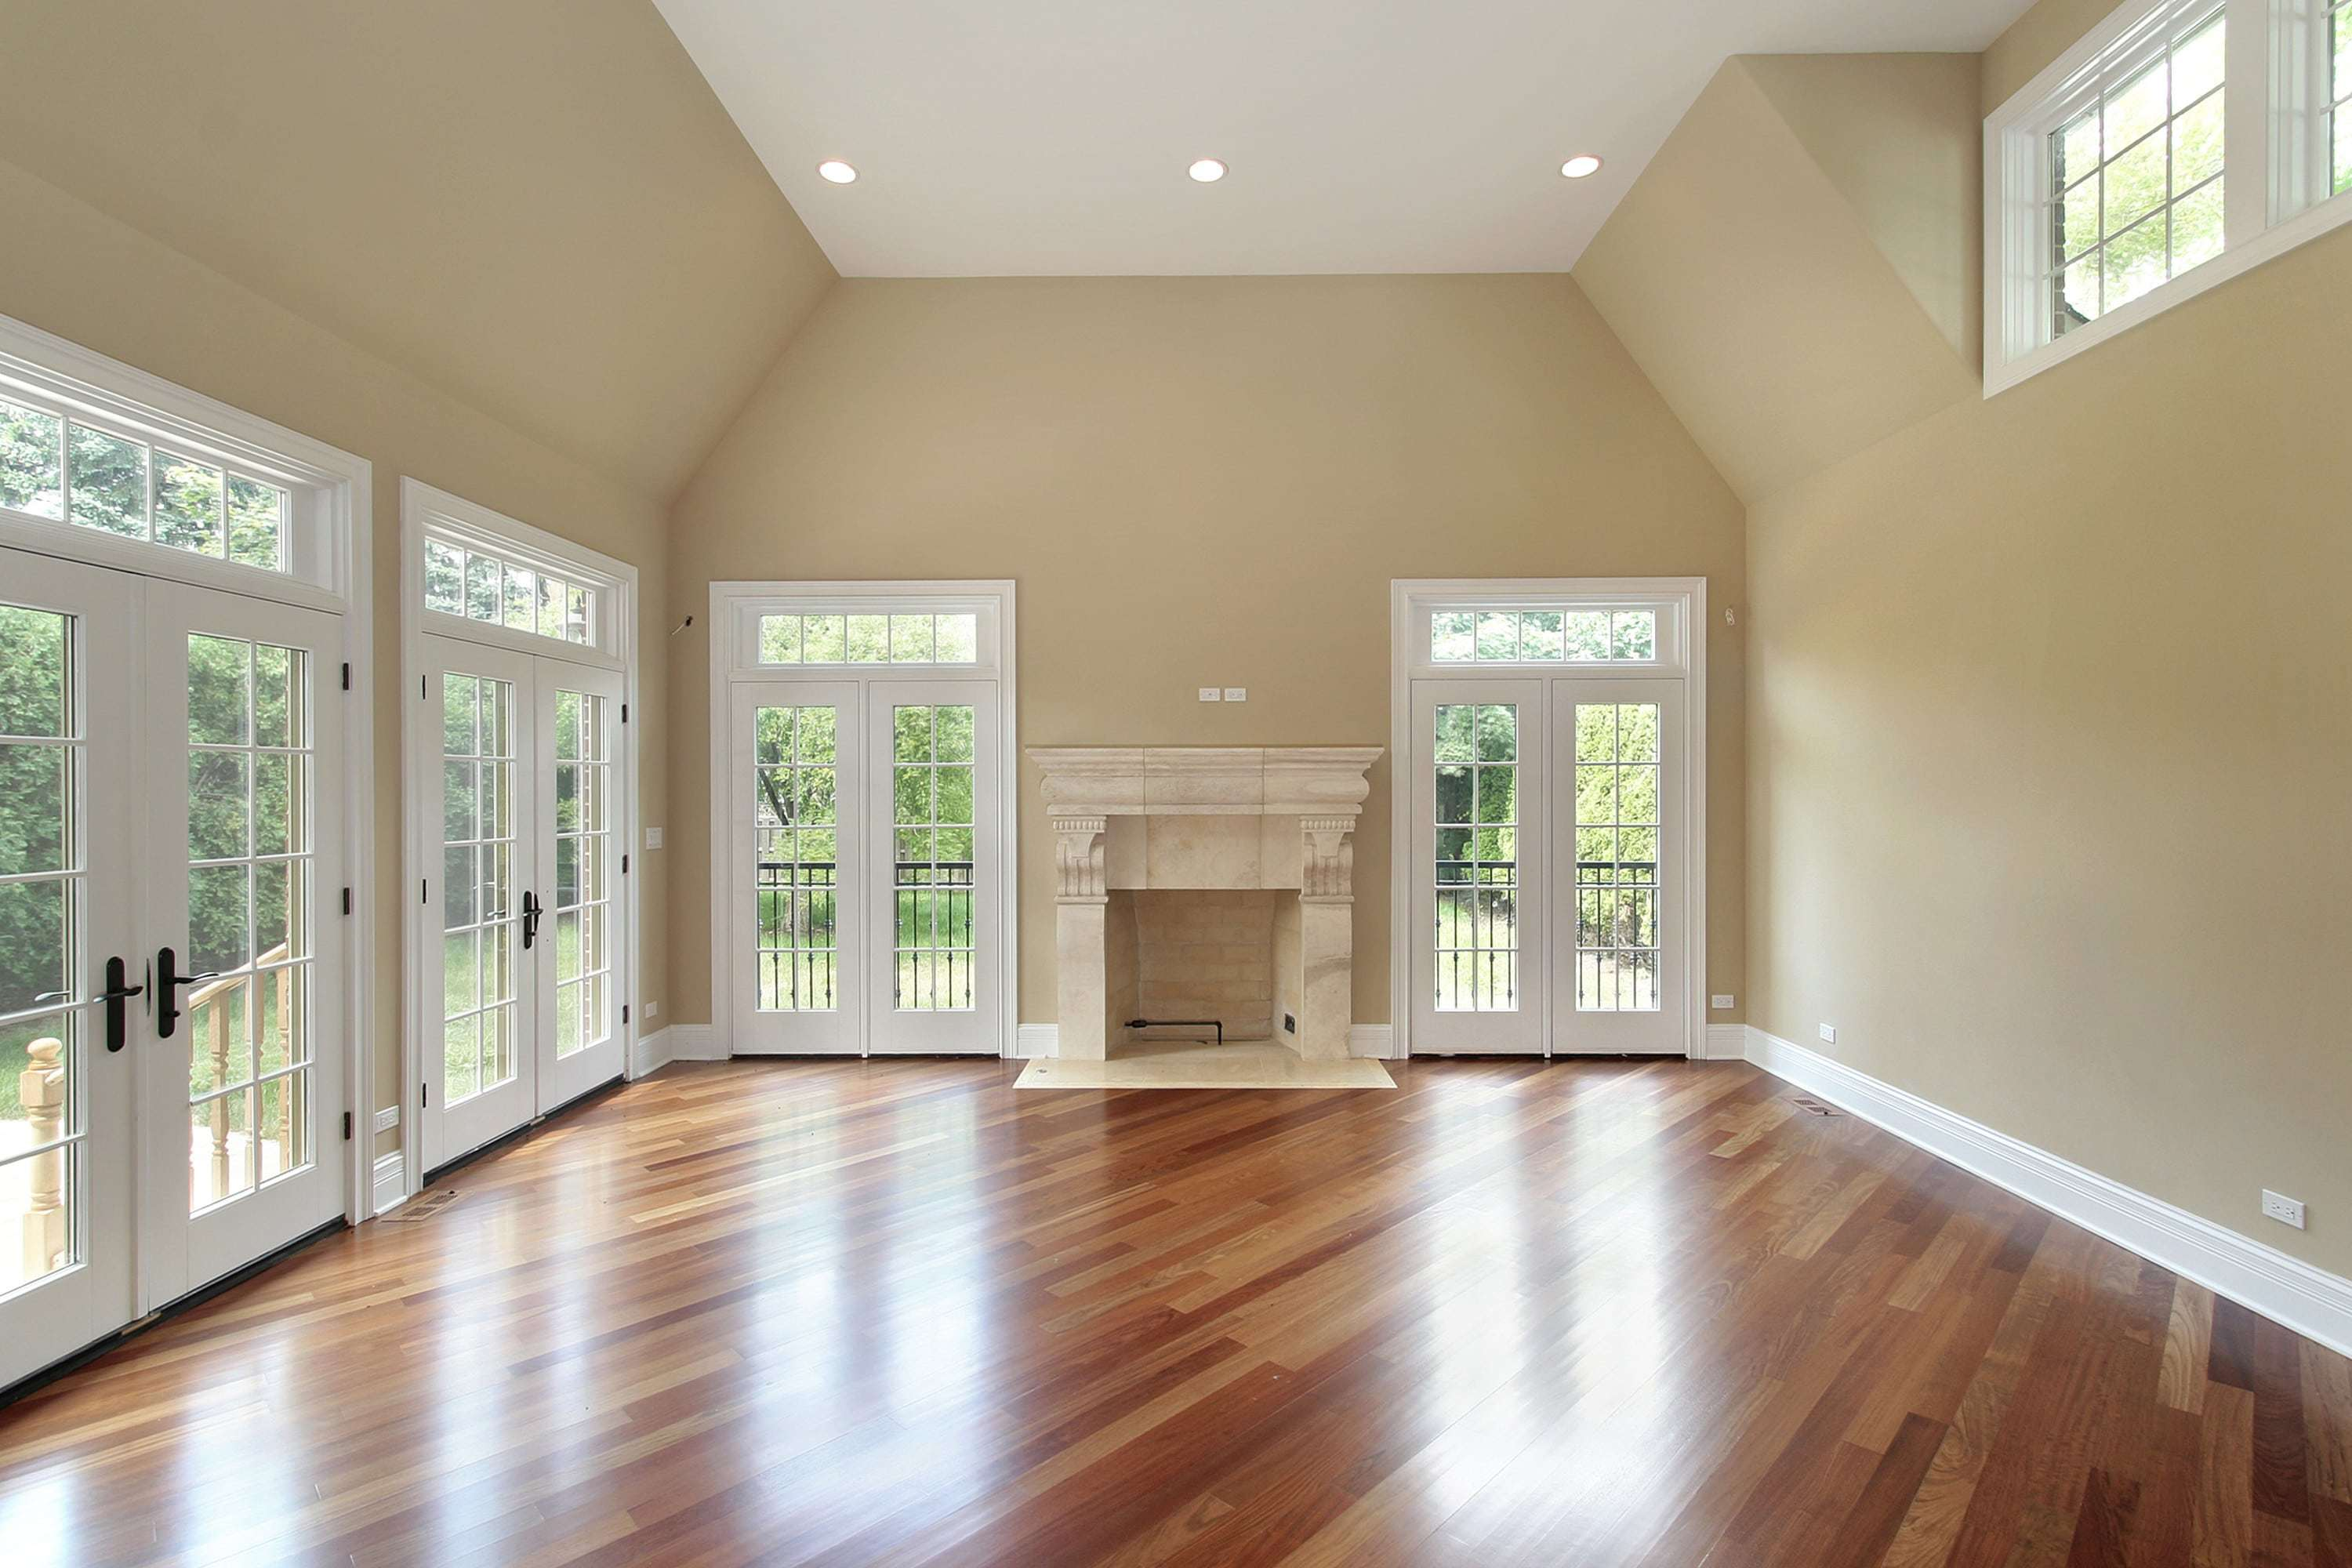 Nj family room addition facts bergen county contractors for Pictures of room additions